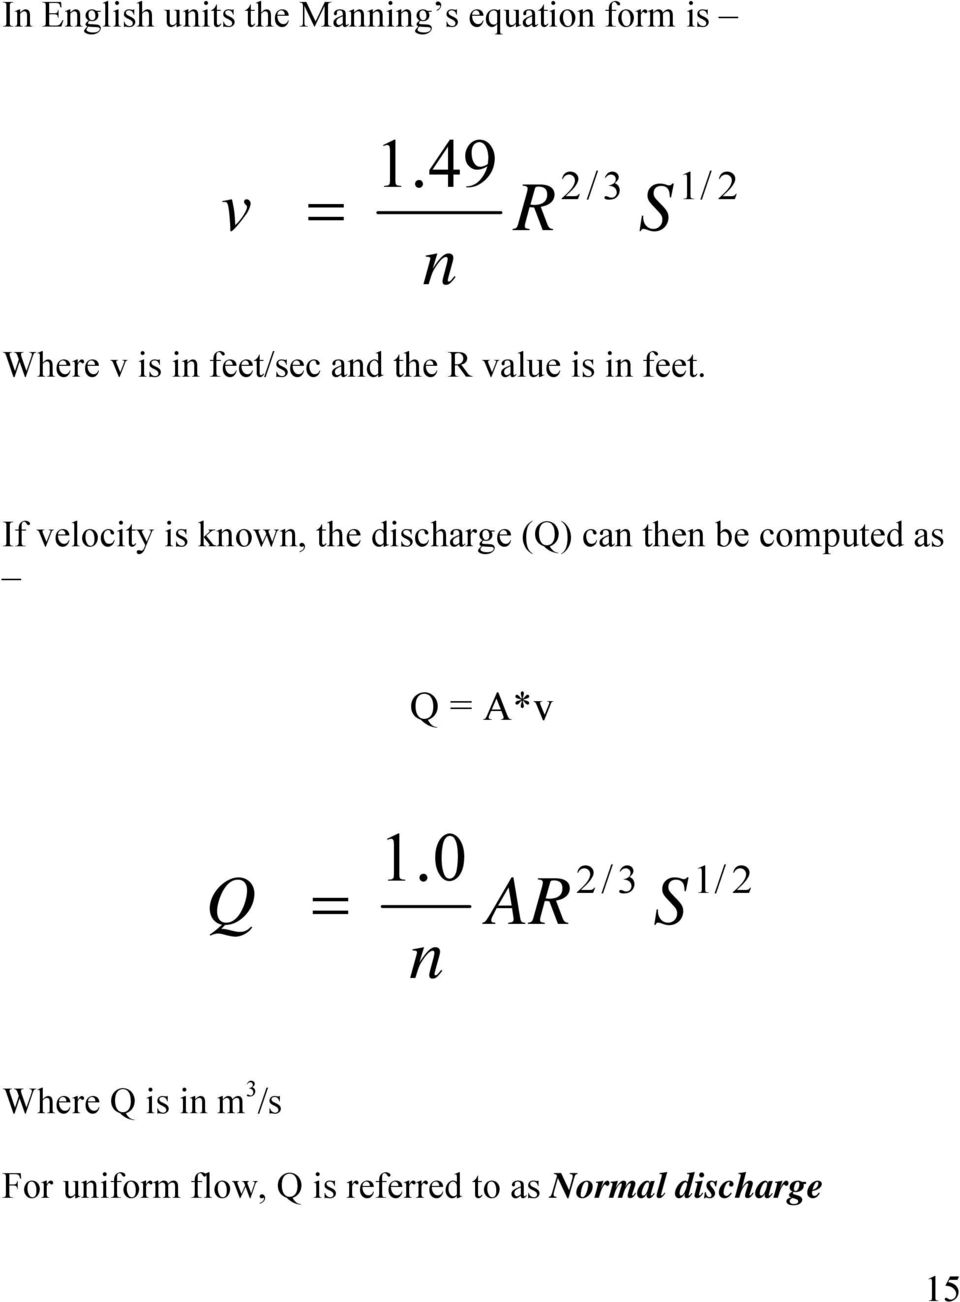 If velocity is known, the discharge (Q) can then be computed as Q = A*v